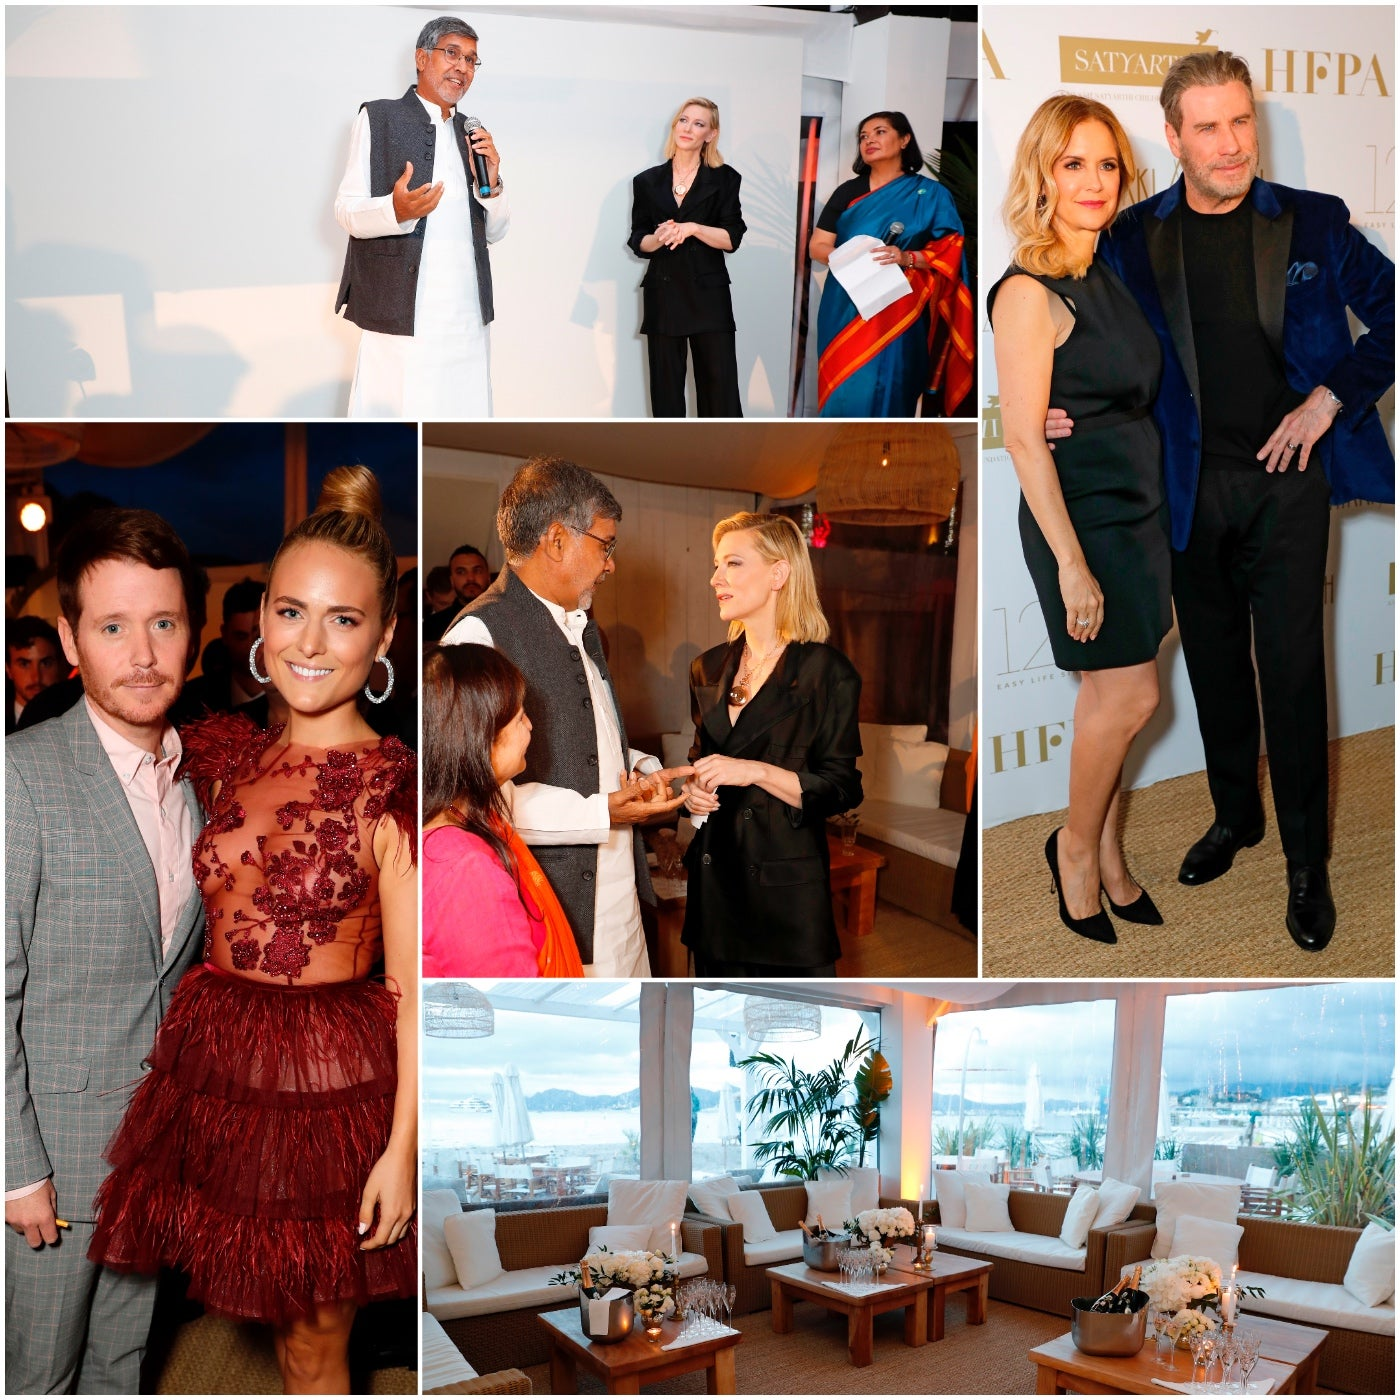 Scenes from the HFPA event at Cannes 2018